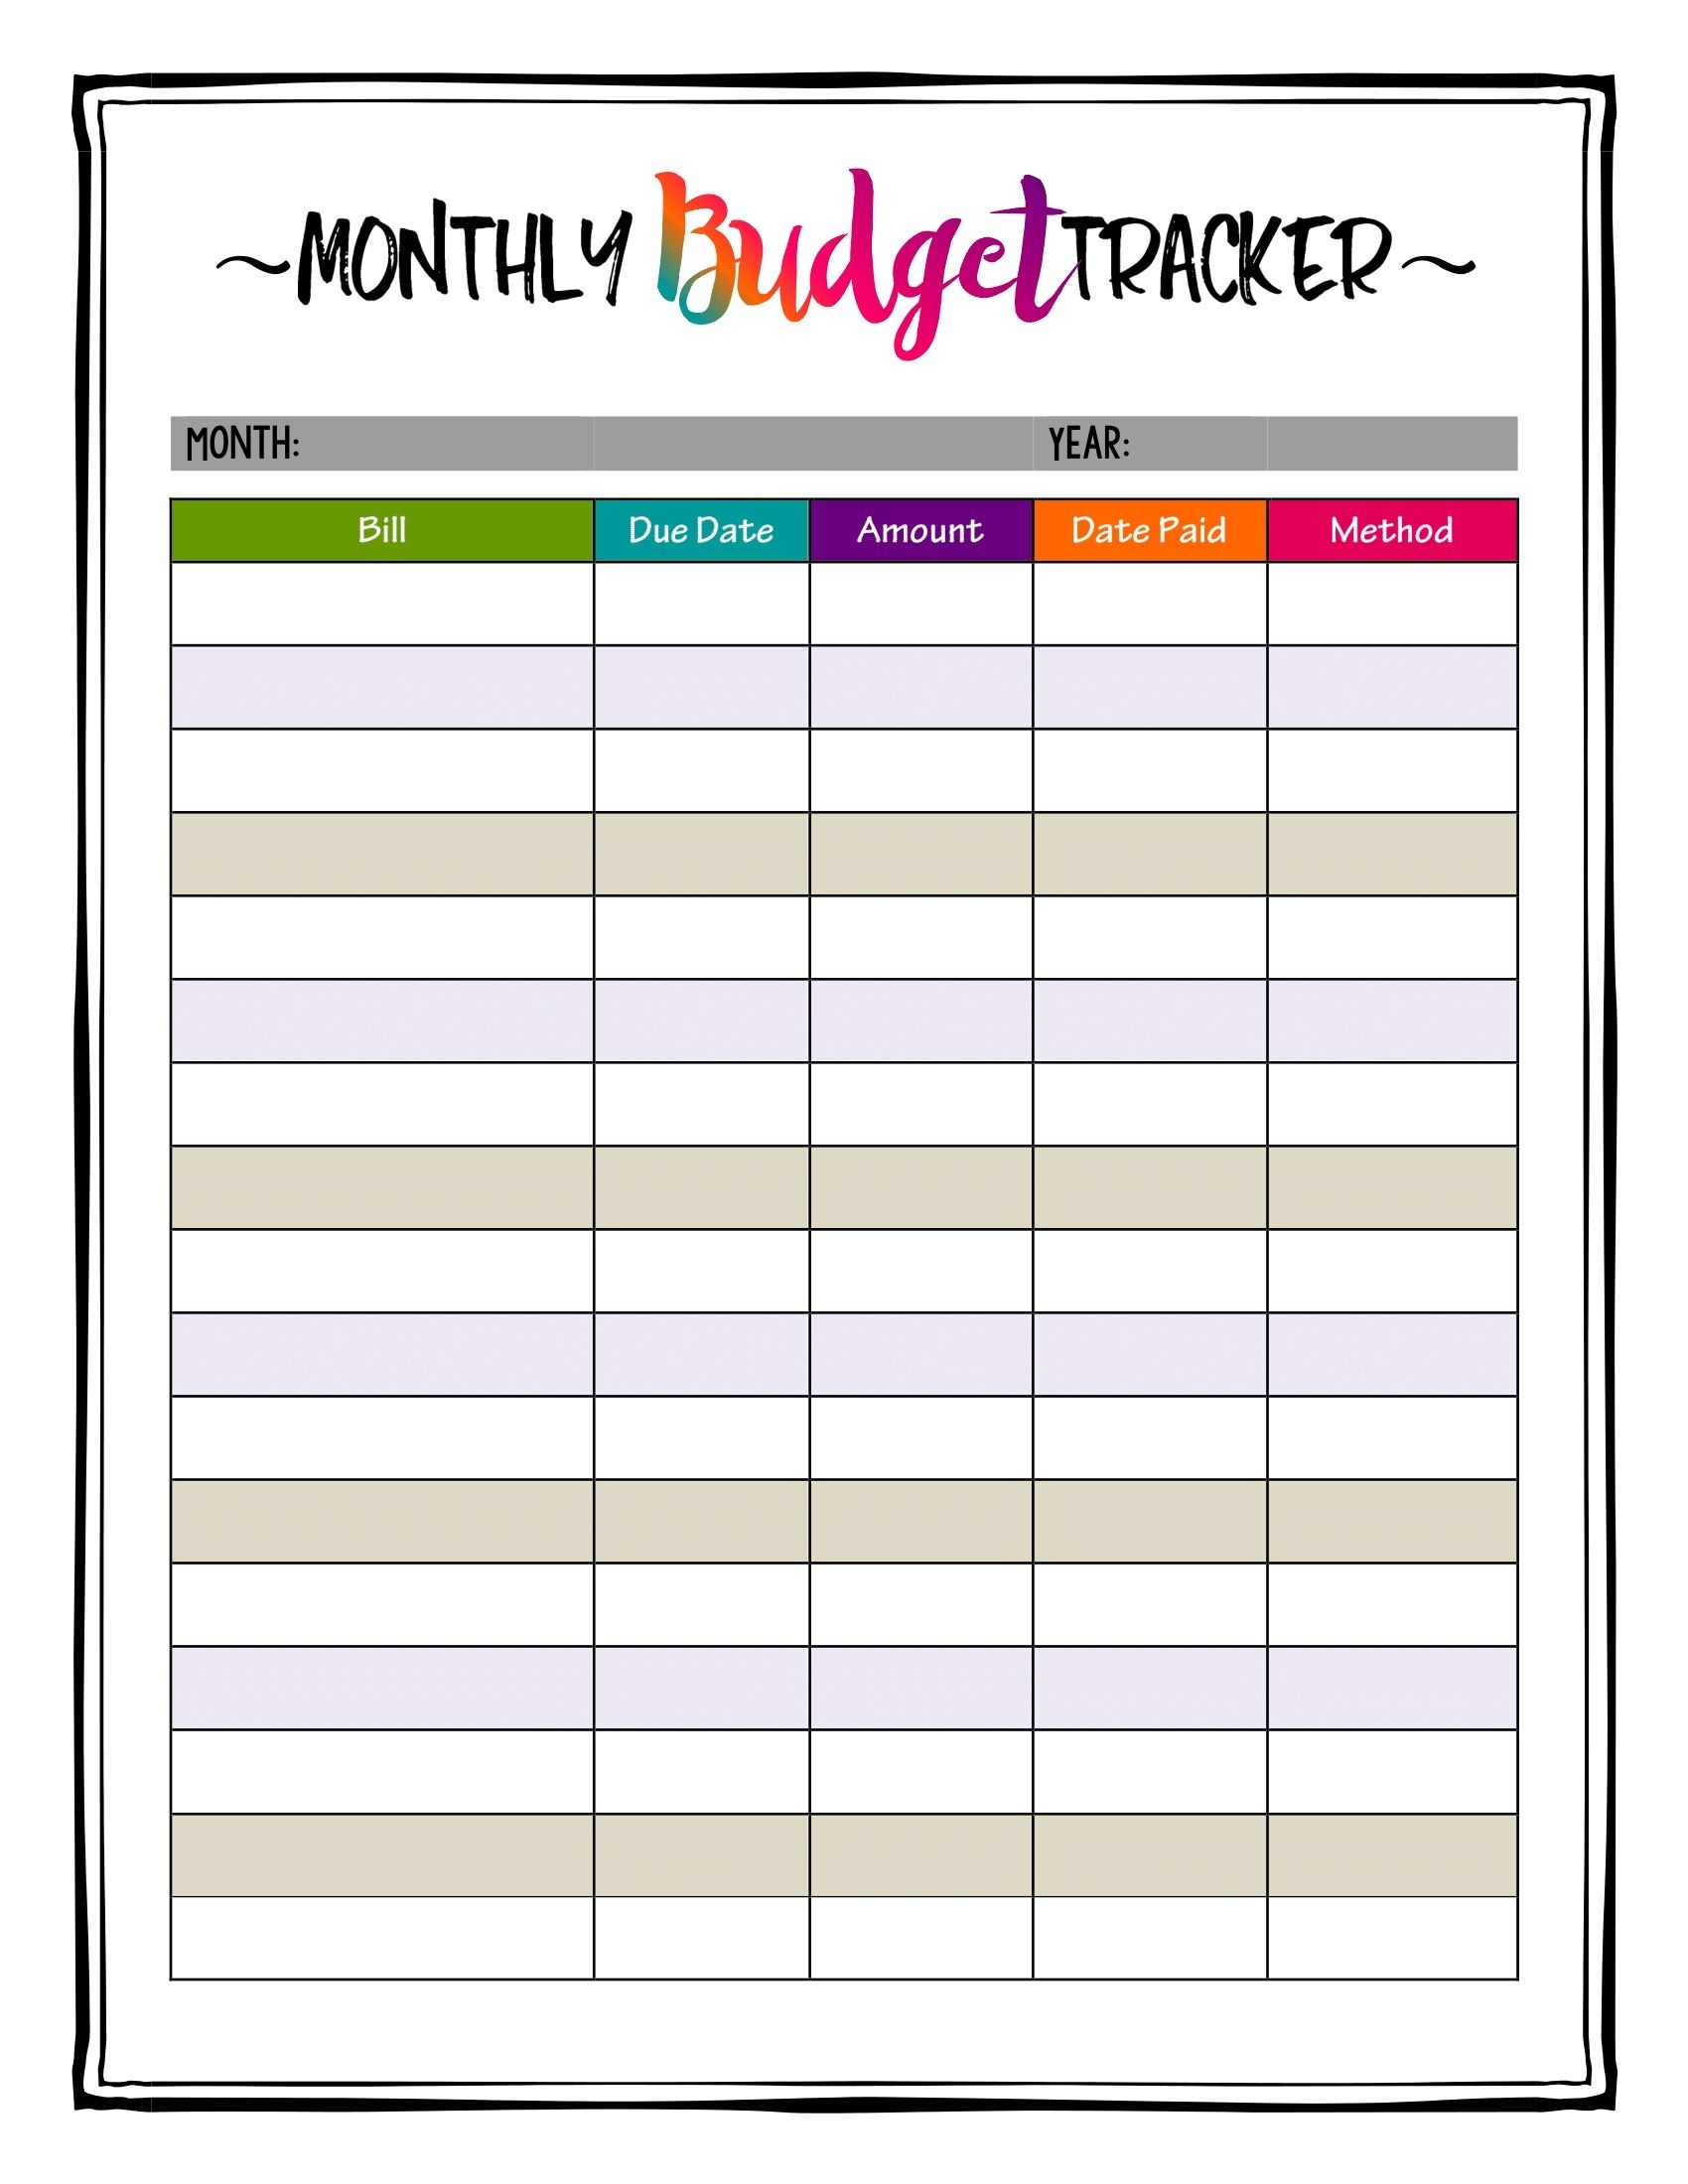 How To Organize Bills! Super Bright Budget Tracker Makes Keeping A for Printable Bill Payment Month Year